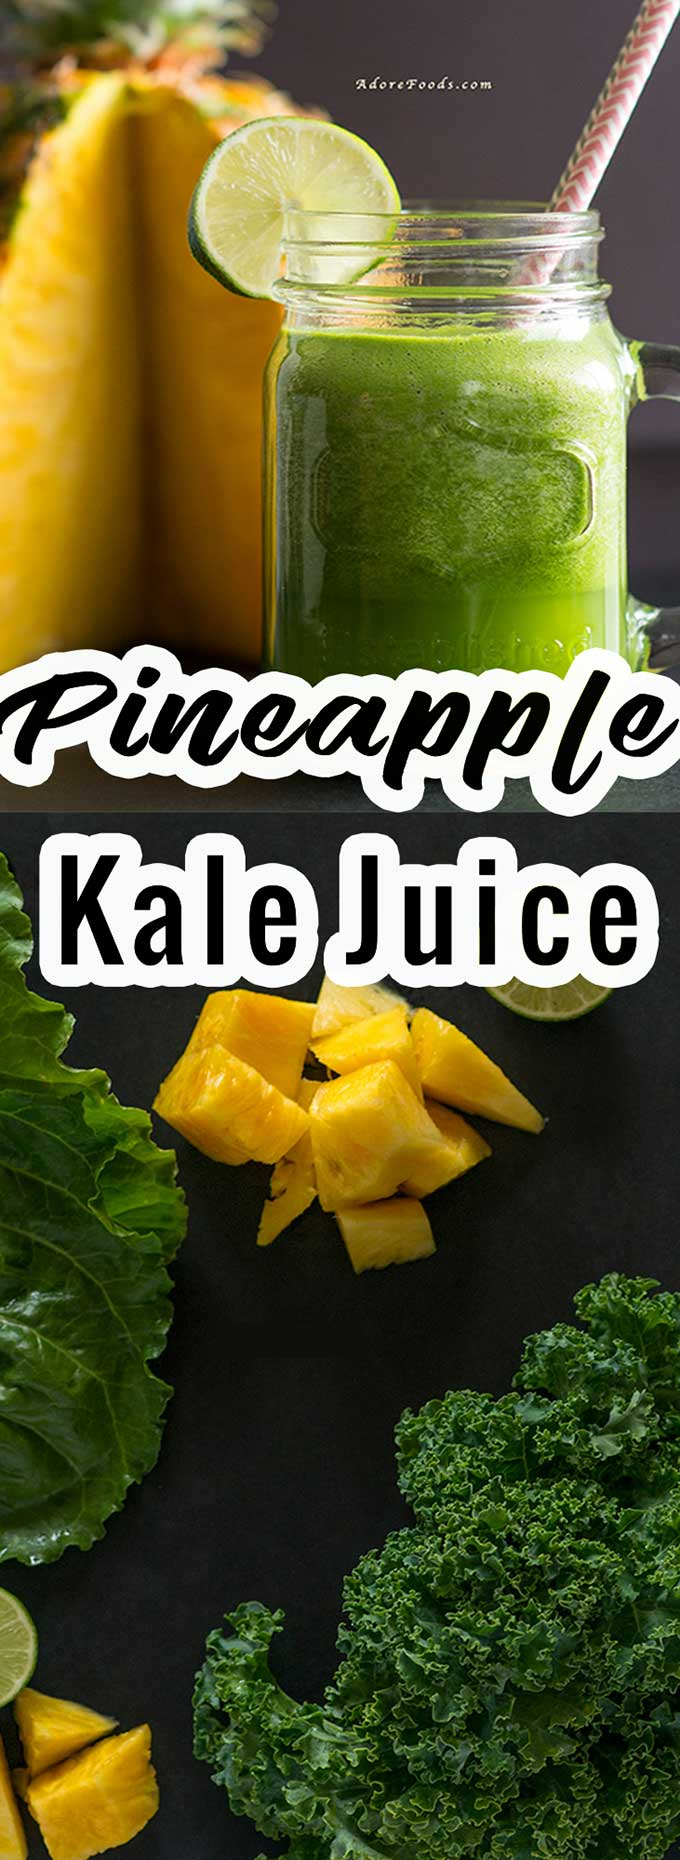 pineapple and kale fresh green juice recipe